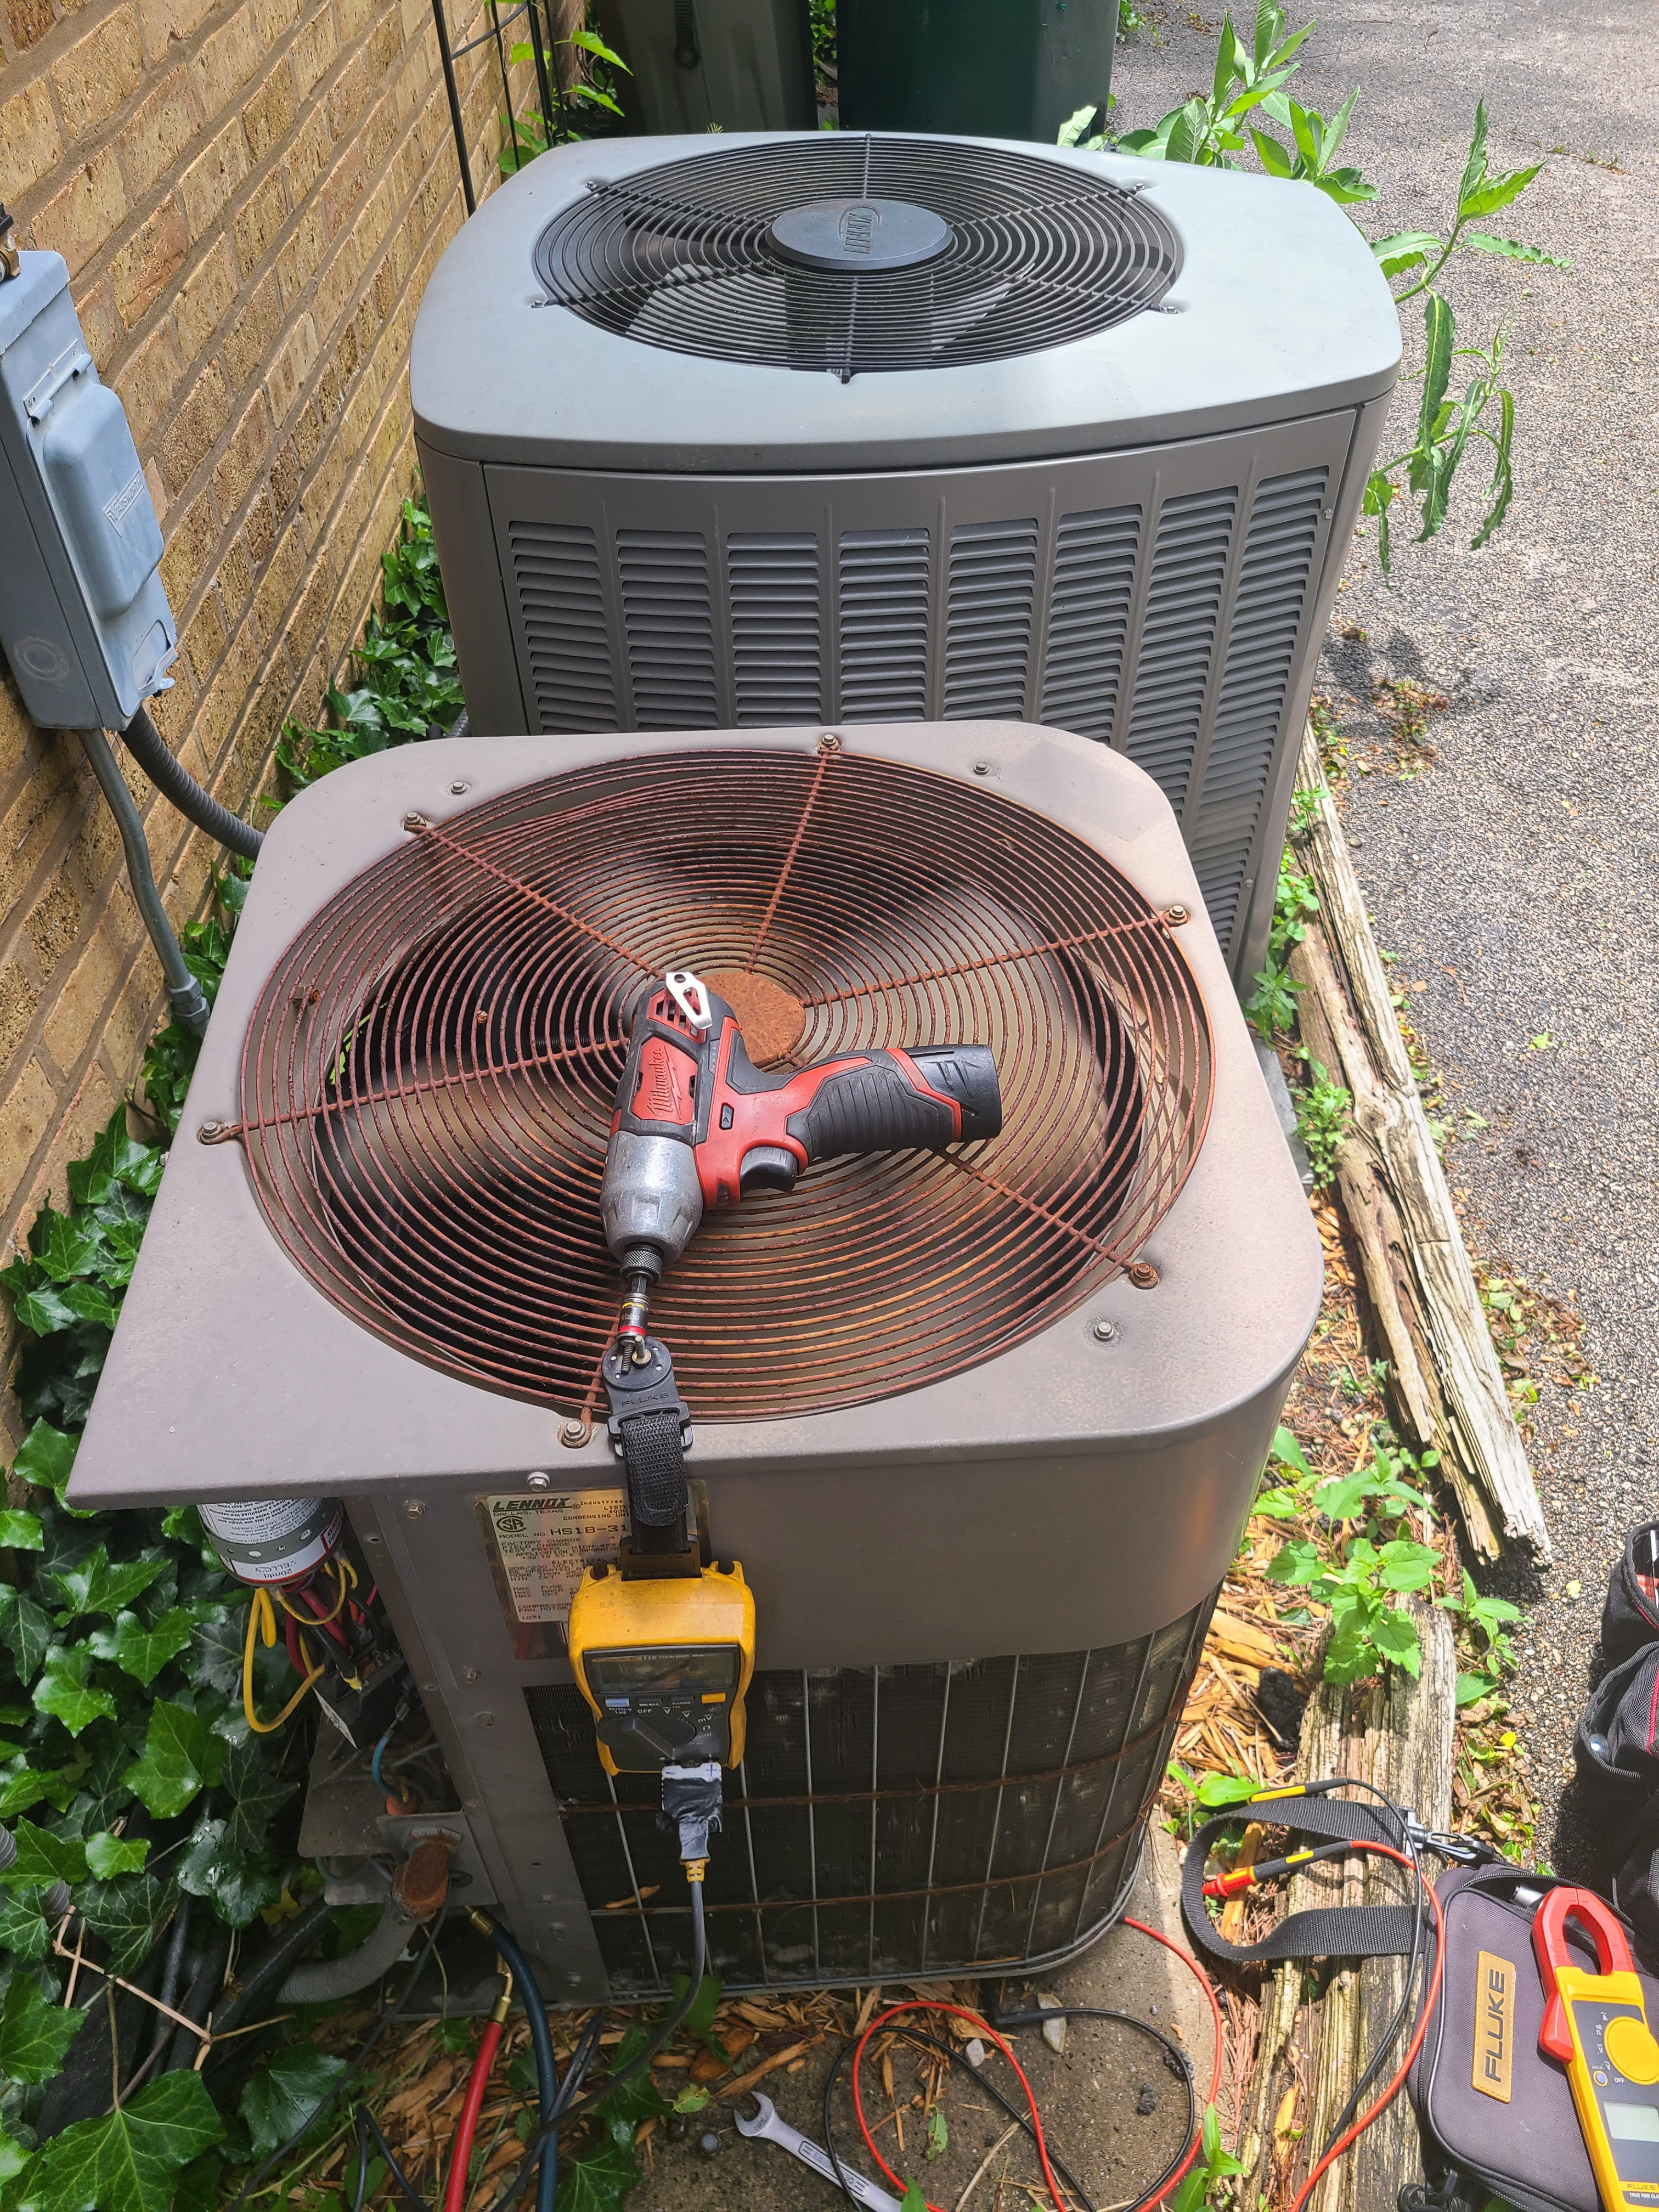 2 Lennox air conditioning system cleaned and checked. Ready for summer!